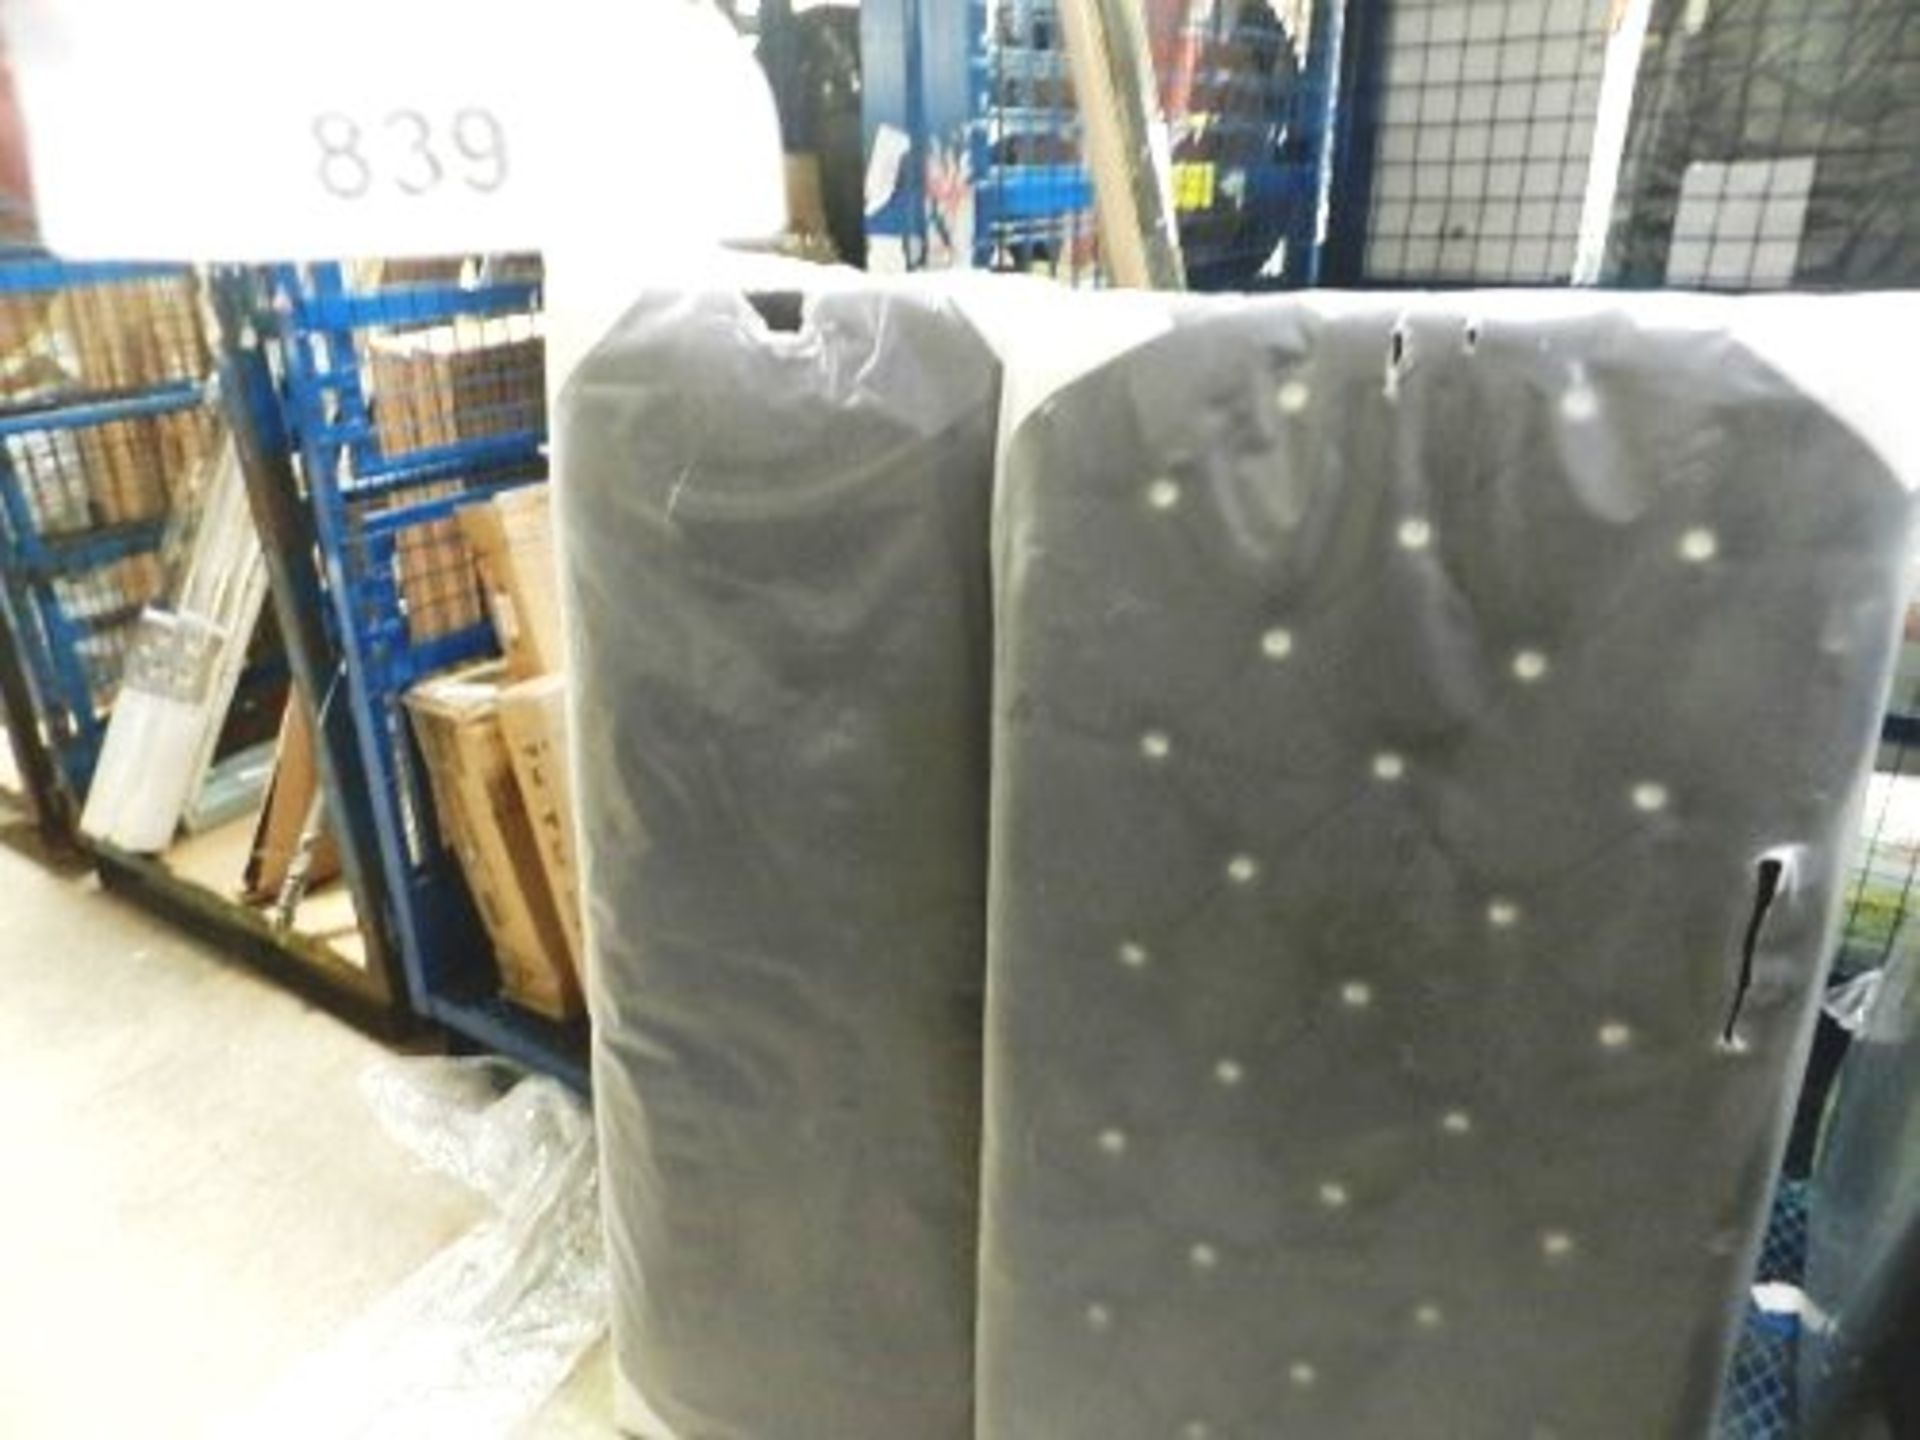 Lot 839 - 1 x 32 stud diamond black headboard, 135cm x 65cm and 1 x 11 stud black headboard, 135cm x 53cm -